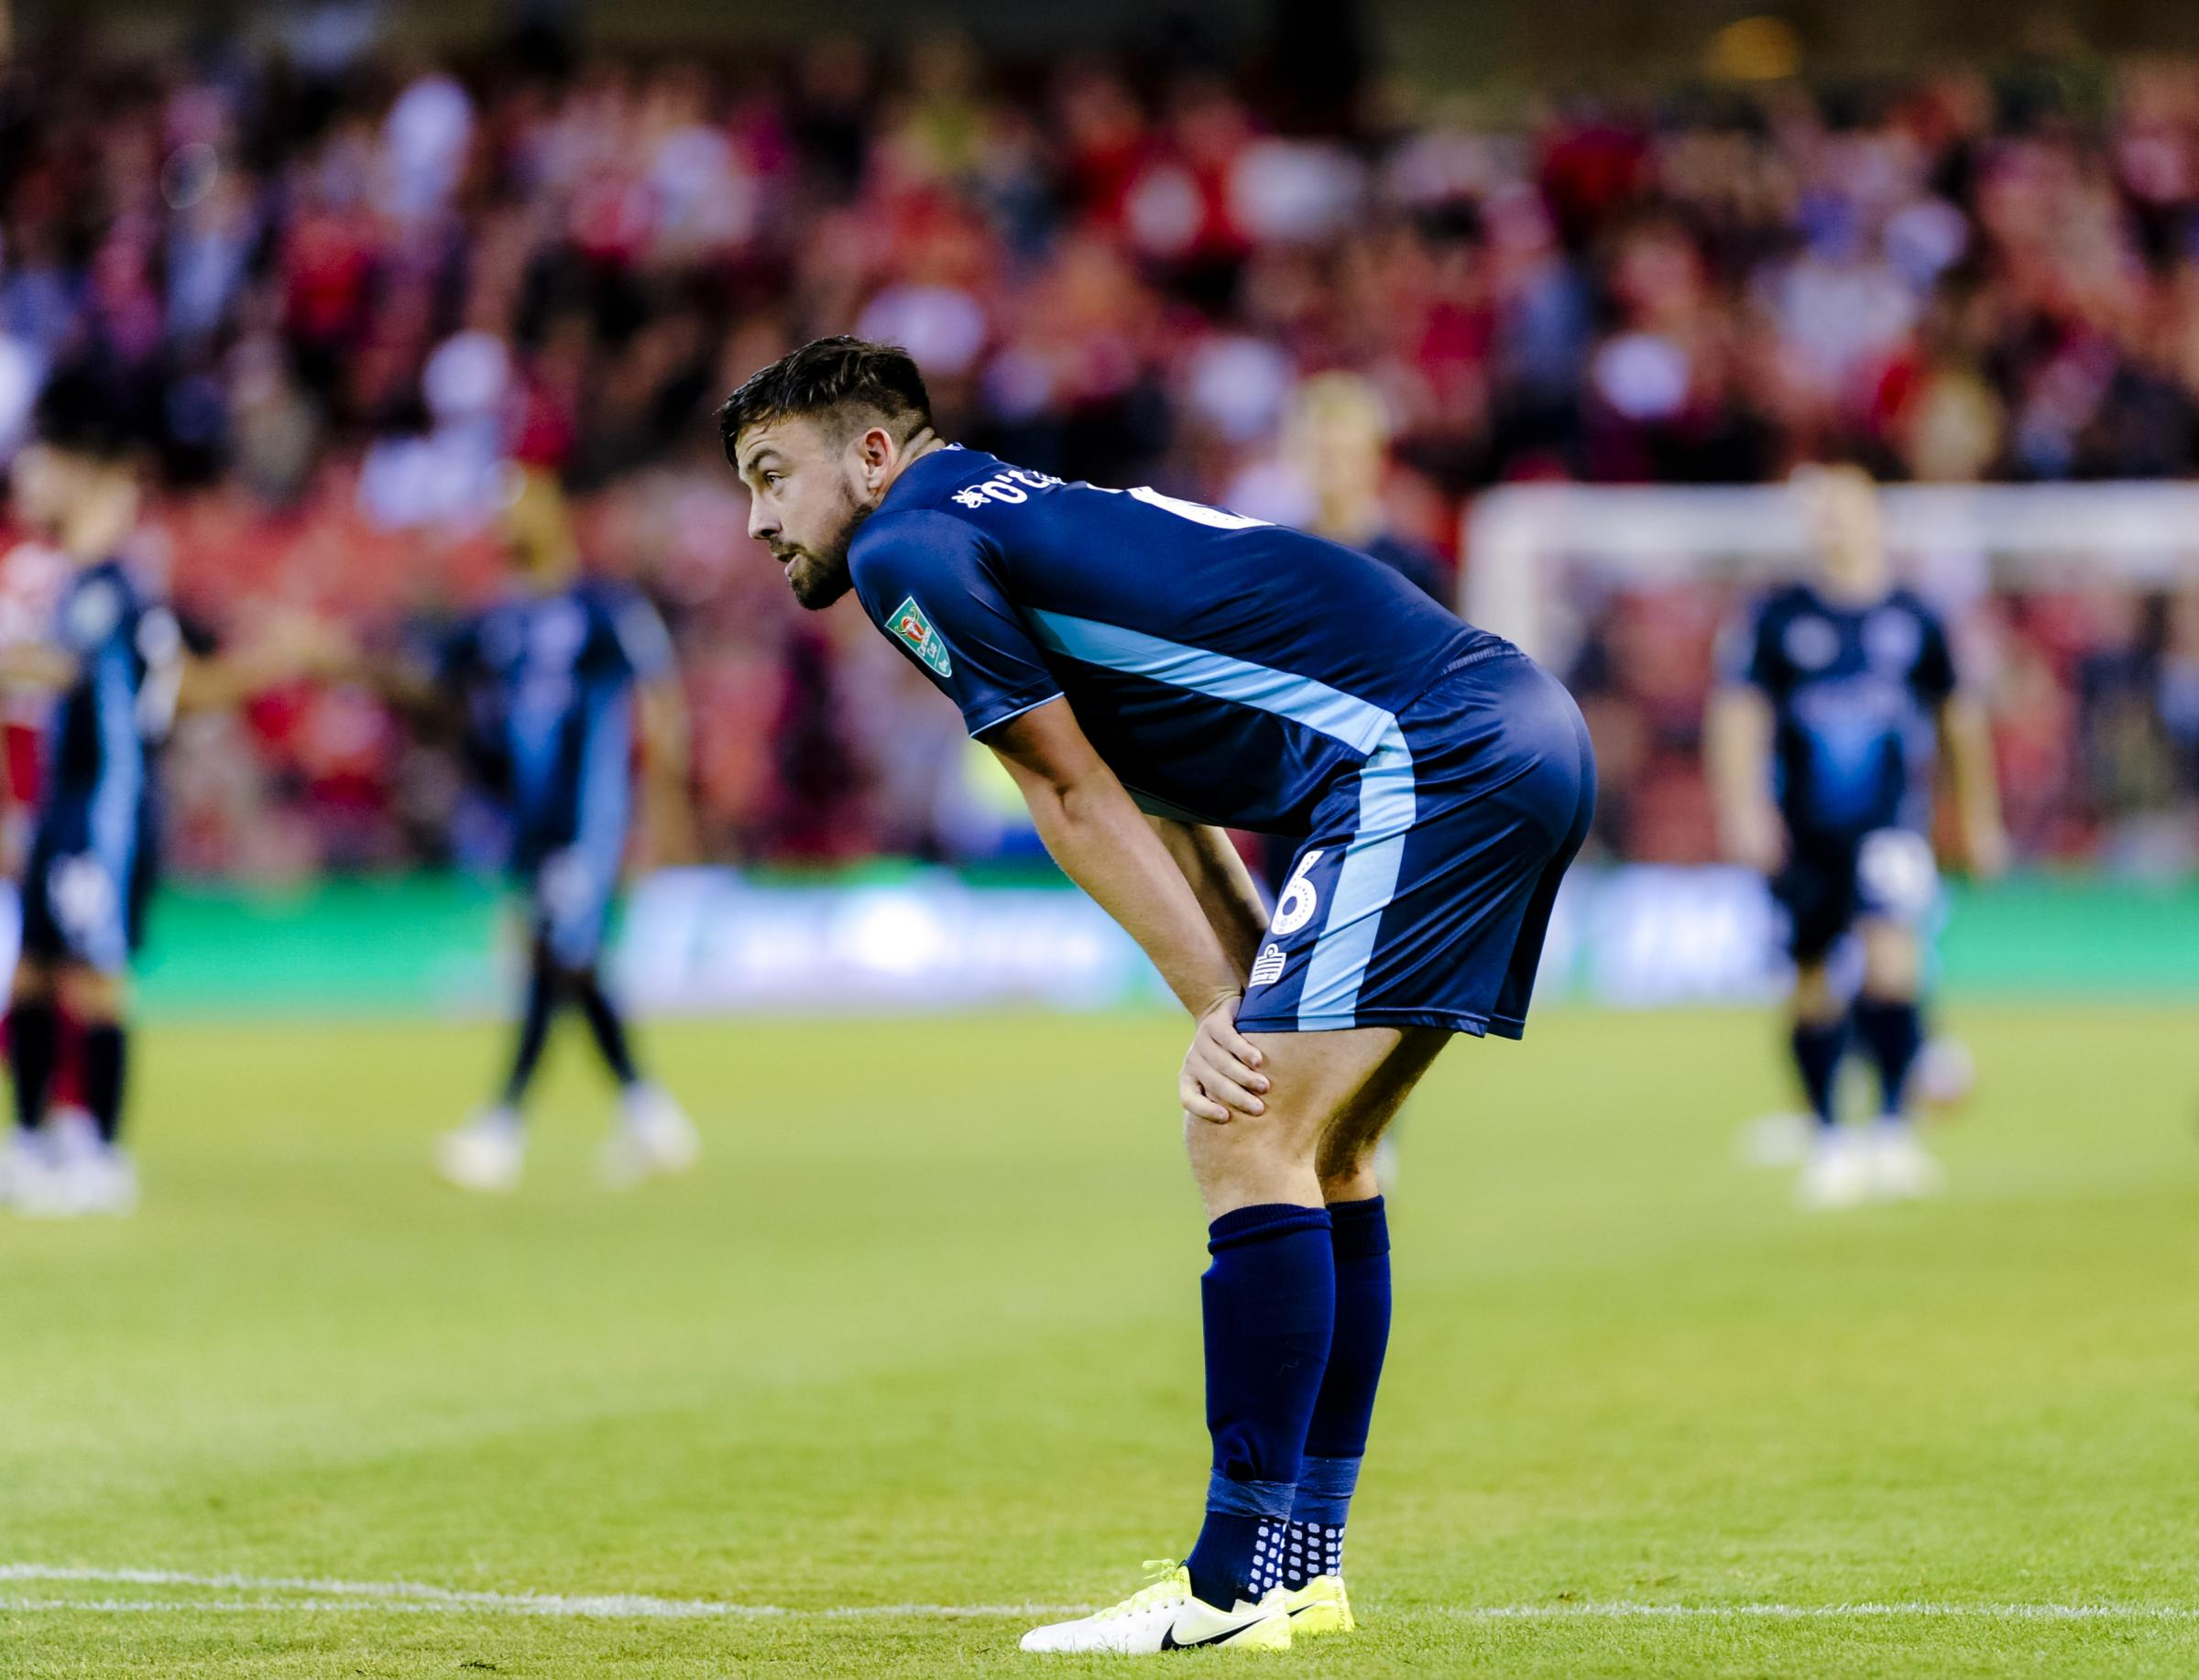 Bury defender Eoghan O'Connell after missing his penalty during the shoot out at the end of the Carabao Cup Round 1 match between Nottingham Forest and Bury FC at The City Ground. Picture by Andy Whitehead